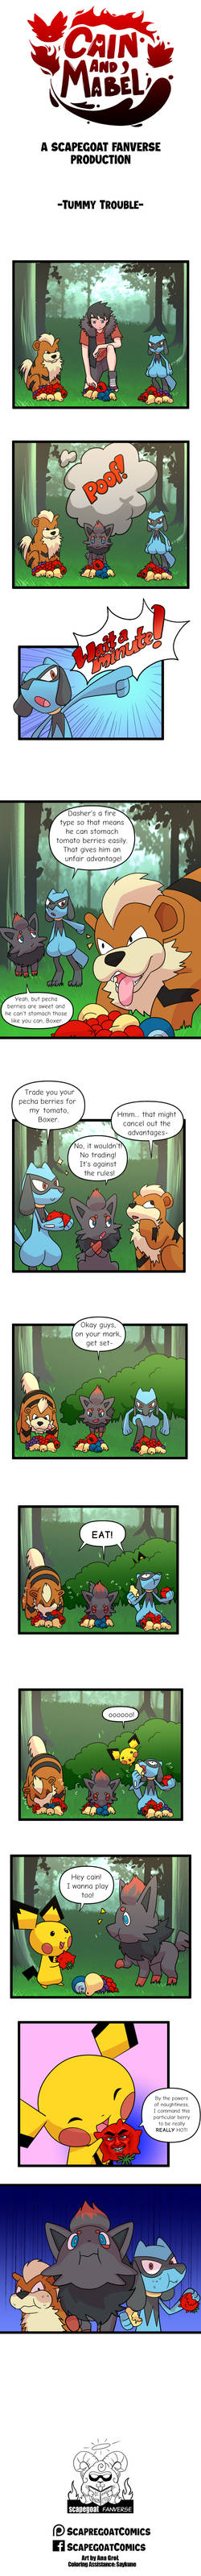 Cain and Mabel A Pokemon Webcomic Page 12